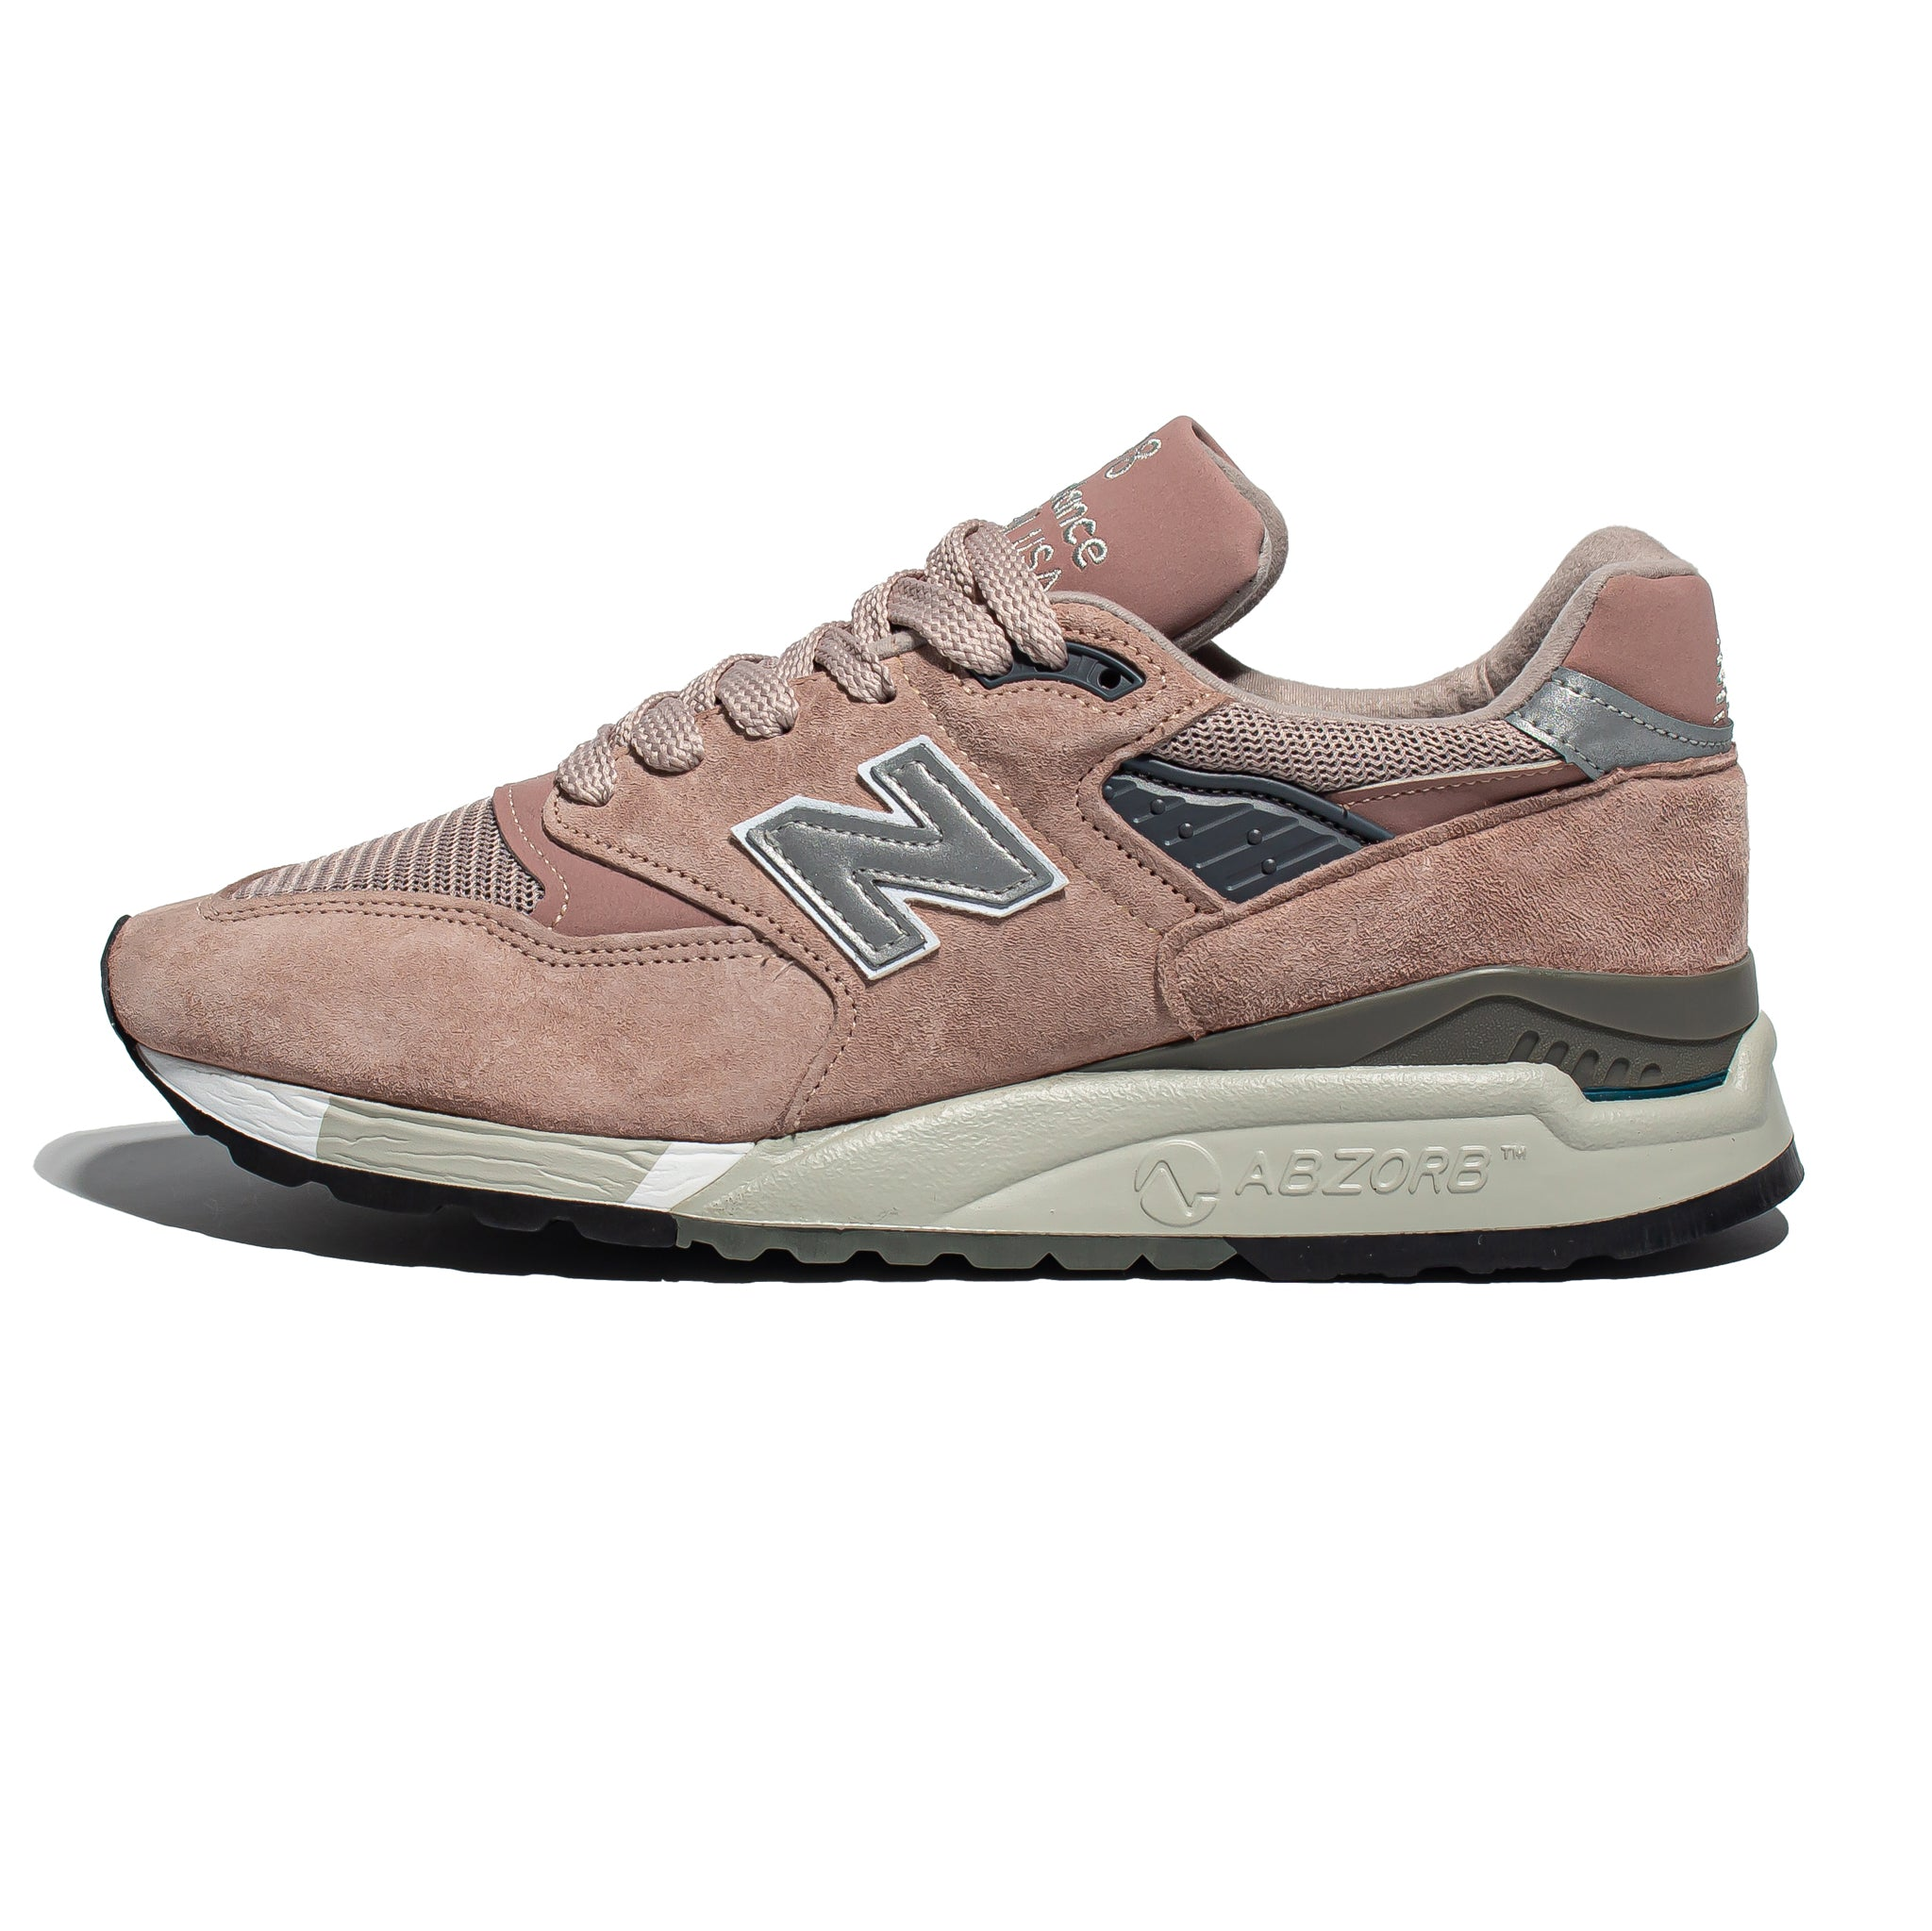 New Balance 'Made in USA' M998KI1